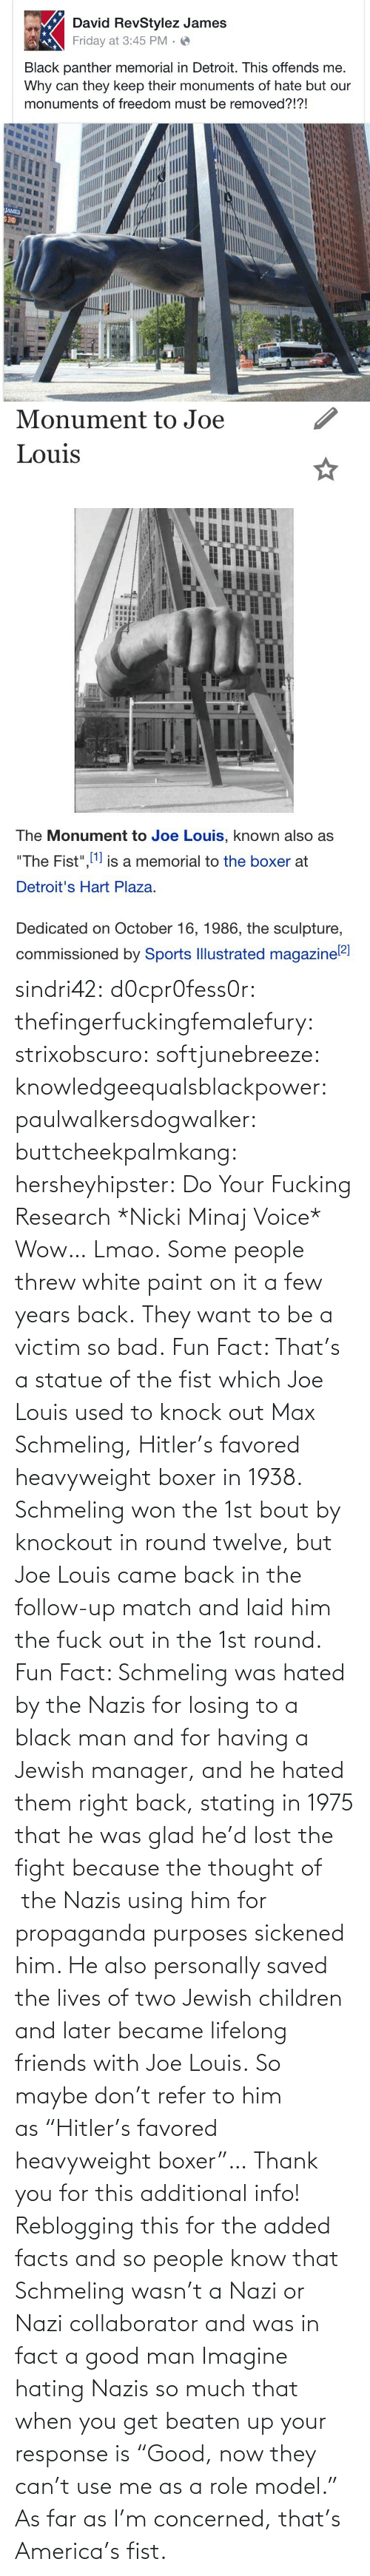 "so much: sindri42:  d0cpr0fess0r:  thefingerfuckingfemalefury:  strixobscuro:  softjunebreeze:  knowledgeequalsblackpower:  paulwalkersdogwalker:   buttcheekpalmkang:   hersheyhipster:  Do Your Fucking Research *Nicki Minaj Voice*    Wow… Lmao.   Some people threw white paint on it a few years back.   They want to be a victim so bad.  Fun Fact: That's a statue of the fist which Joe Louis used to knock out Max Schmeling, Hitler's favored heavyweight boxer in 1938. Schmeling won the 1st bout by knockout in round twelve, but Joe Louis came back in the follow-up match and laid him the fuck out in the 1st round.  Fun Fact: Schmeling was hated by the Nazis for losing to a black man and for having a Jewish manager, and he hated them right back, stating in 1975 that he was glad he'd lost the fight because the thought of  the Nazis using him for propaganda purposes sickened him. He also personally saved the lives of two Jewish children and later became lifelong friends with Joe Louis. So maybe don't refer to him as ""Hitler's favored heavyweight boxer""…  Thank you for this additional info! Reblogging this for the added facts and so people know that Schmeling wasn't a Nazi or Nazi collaborator and was in fact a good man   Imagine hating Nazis so much that when you get beaten up your response is ""Good, now they can't use me as a role model.""  As far as I'm concerned, that's America's fist."